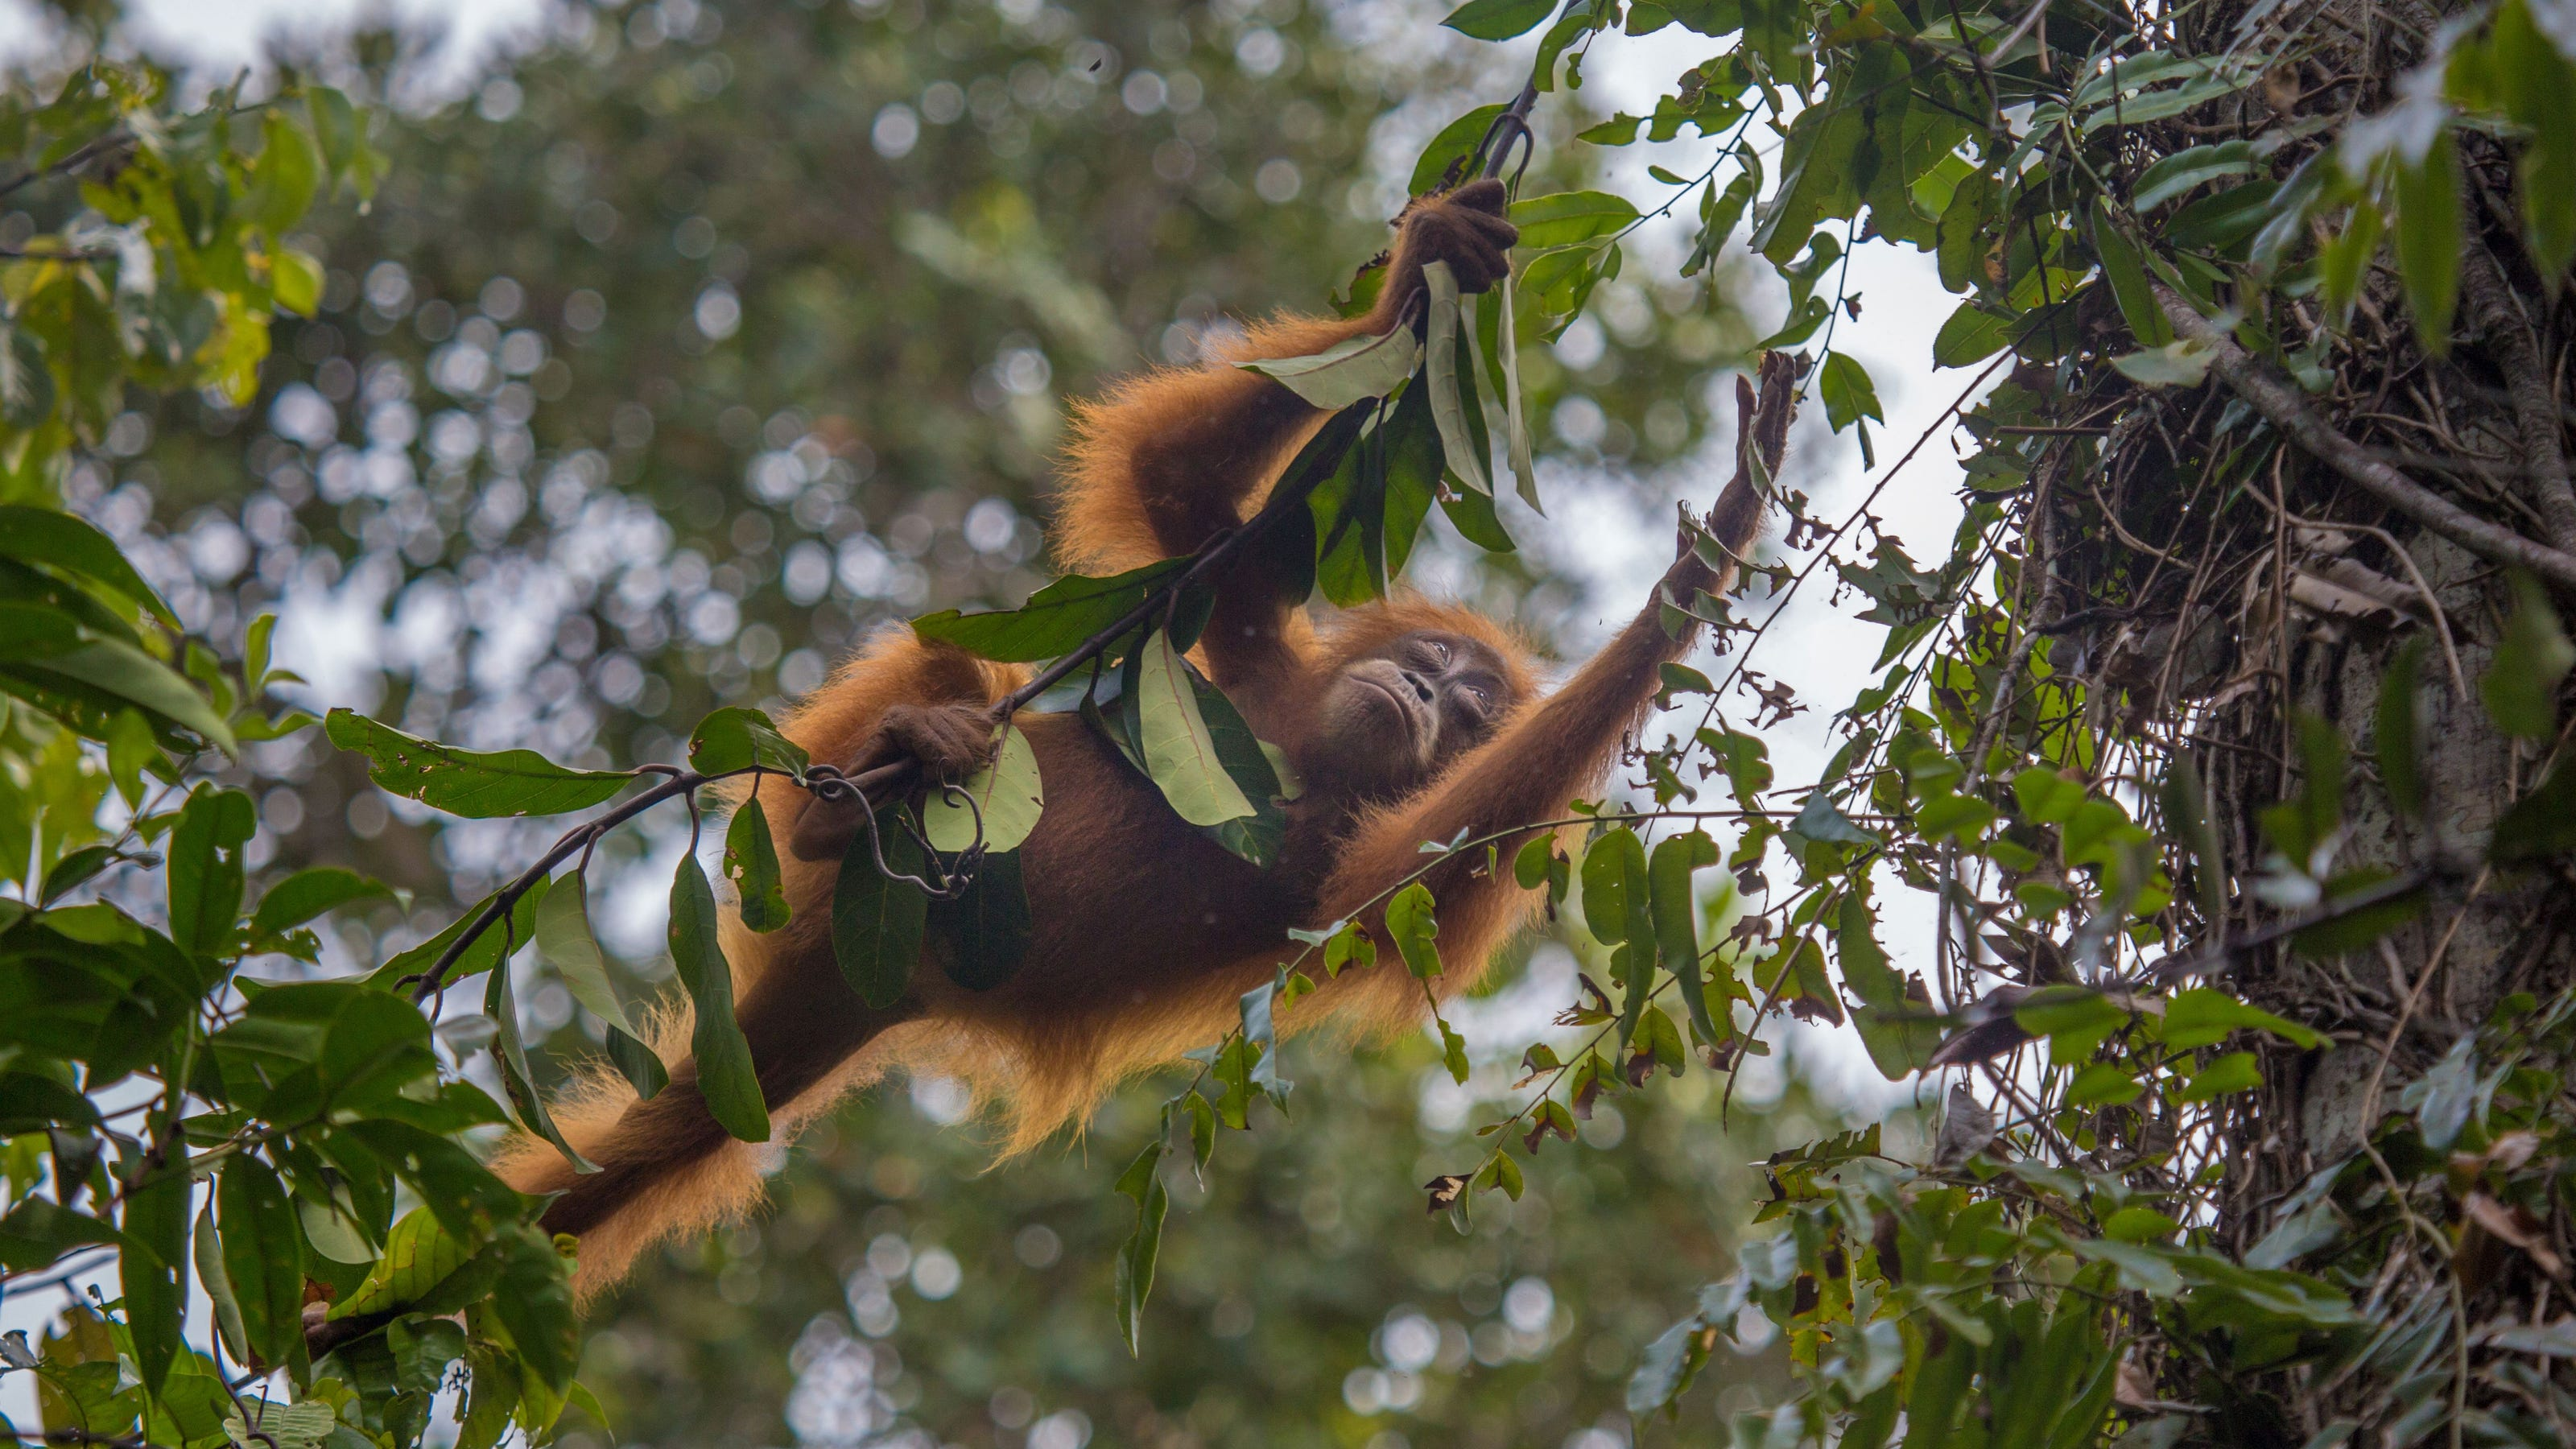 New friends: An orangutan makes itself at home in a village of humans - USA TODAY